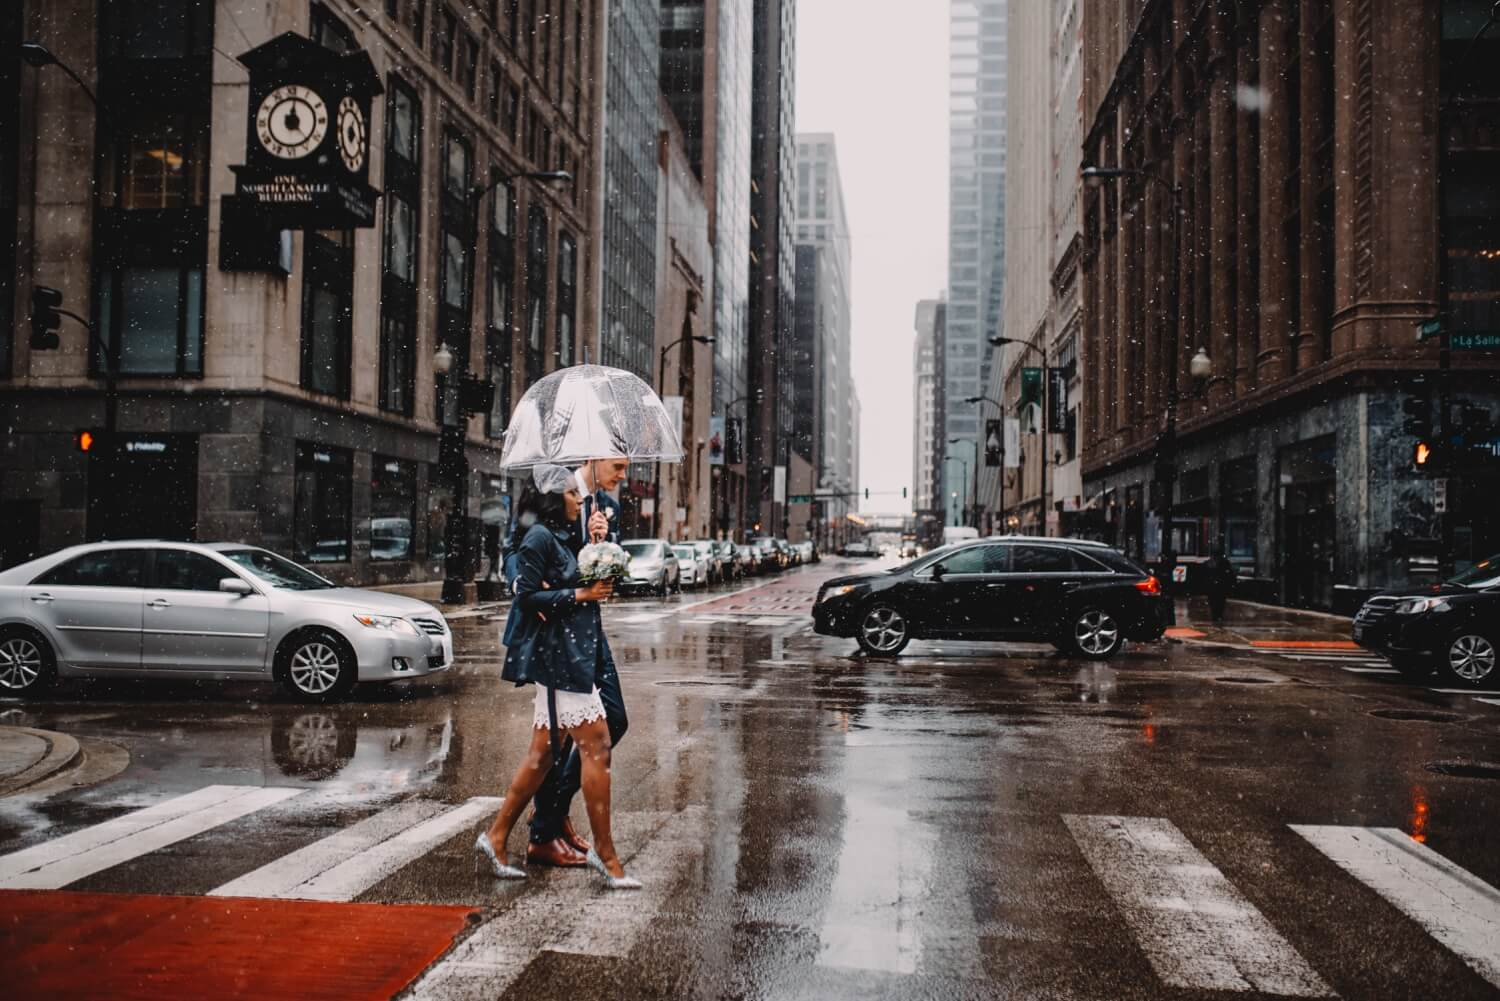 Chicago City Hall Wedding Photographer - The Adamkovi, walking on the streets with snow fall, mixed couple